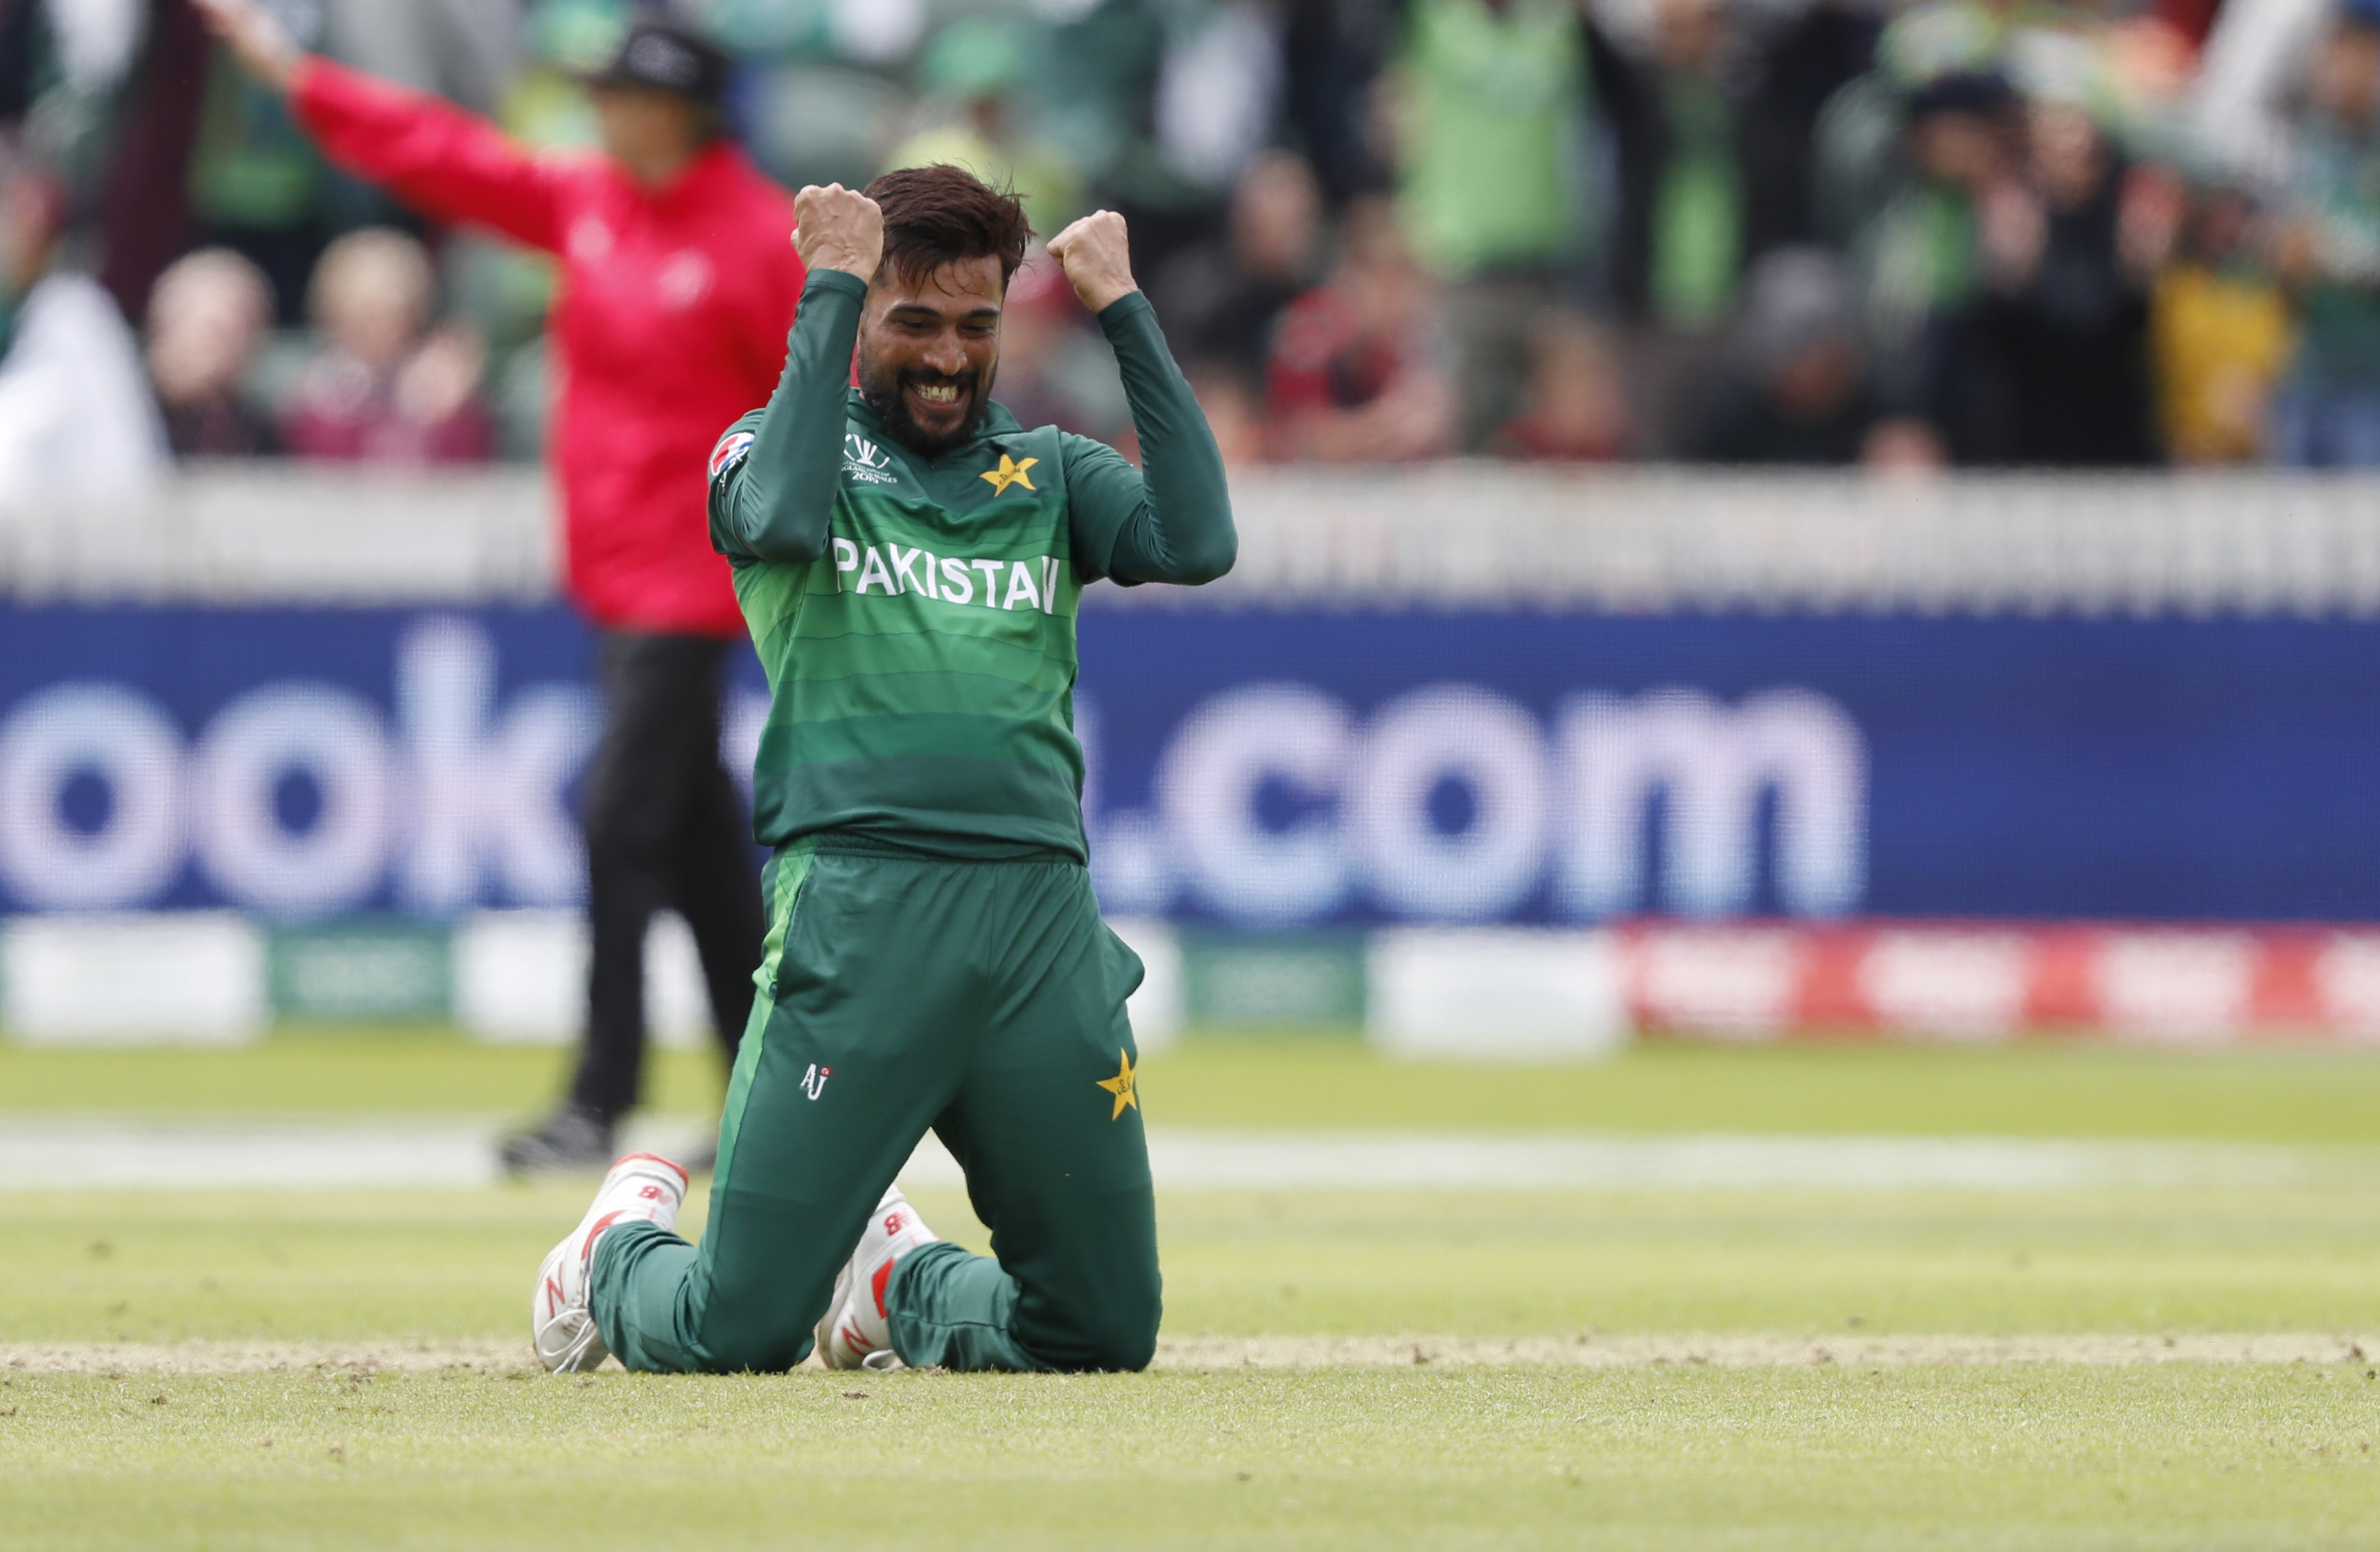 Pakistan's Mohammad Amir celebrates after taking the wicket of Australia's Mitchell Starc at the County Ground in Taunton on June 12.